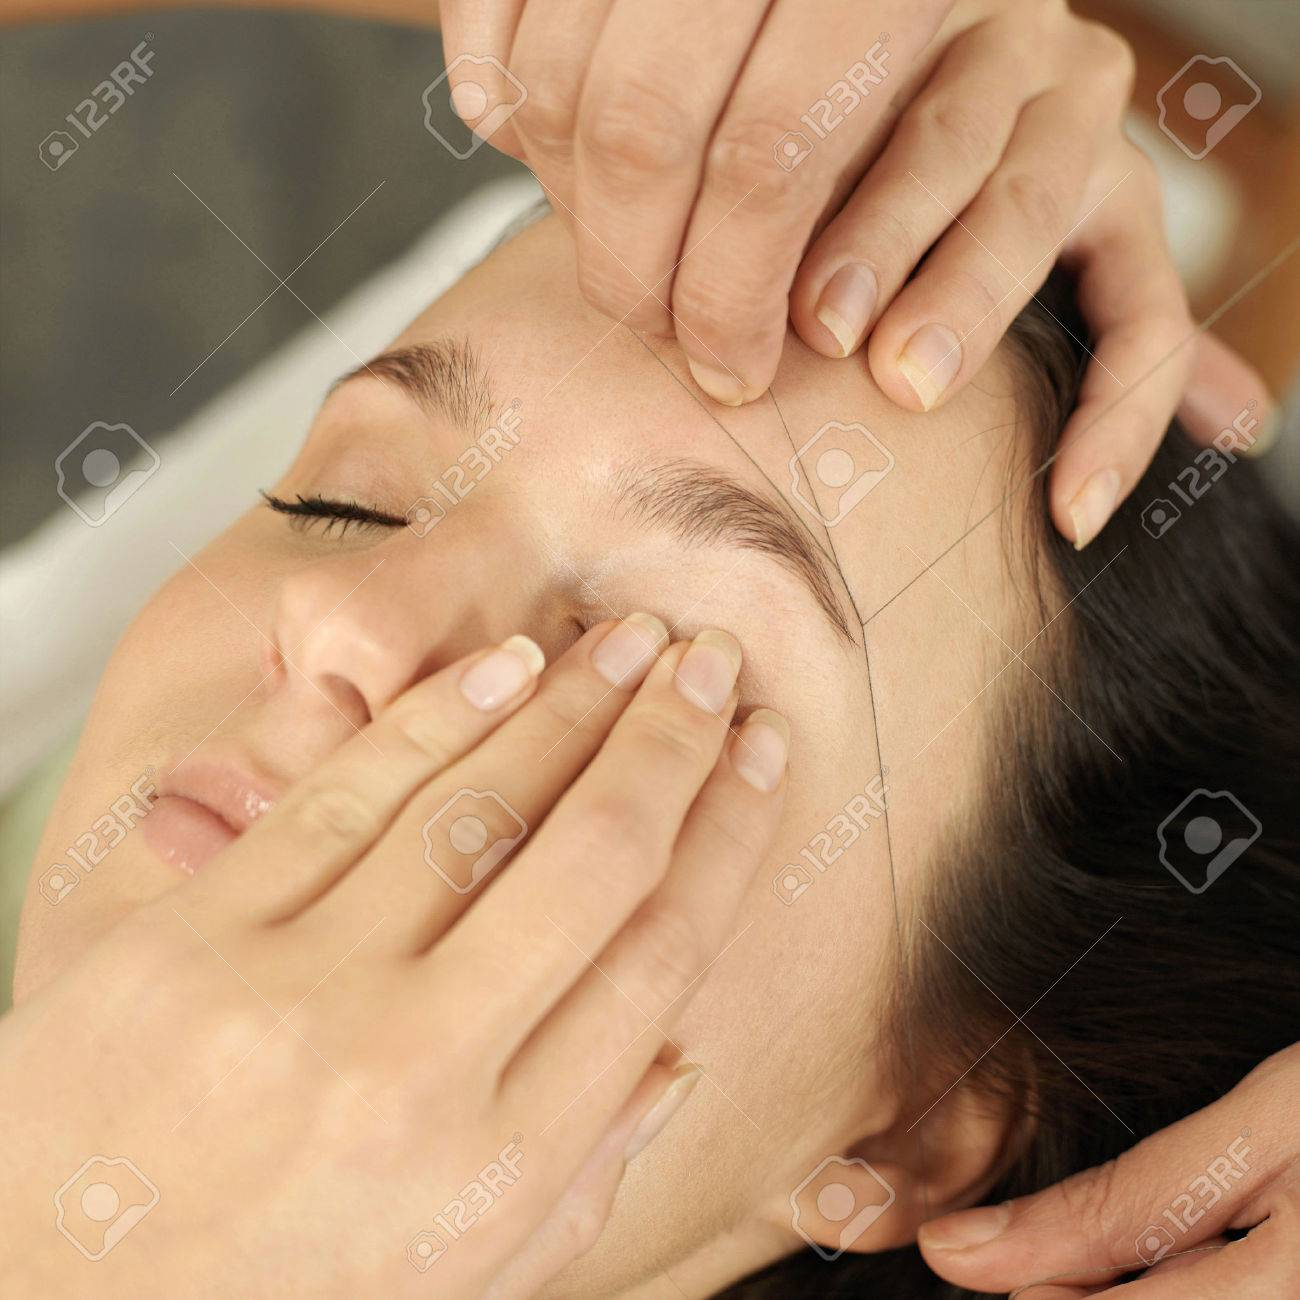 Hand using thread to remove facial hair from woman's face Stock Photo - 26265124